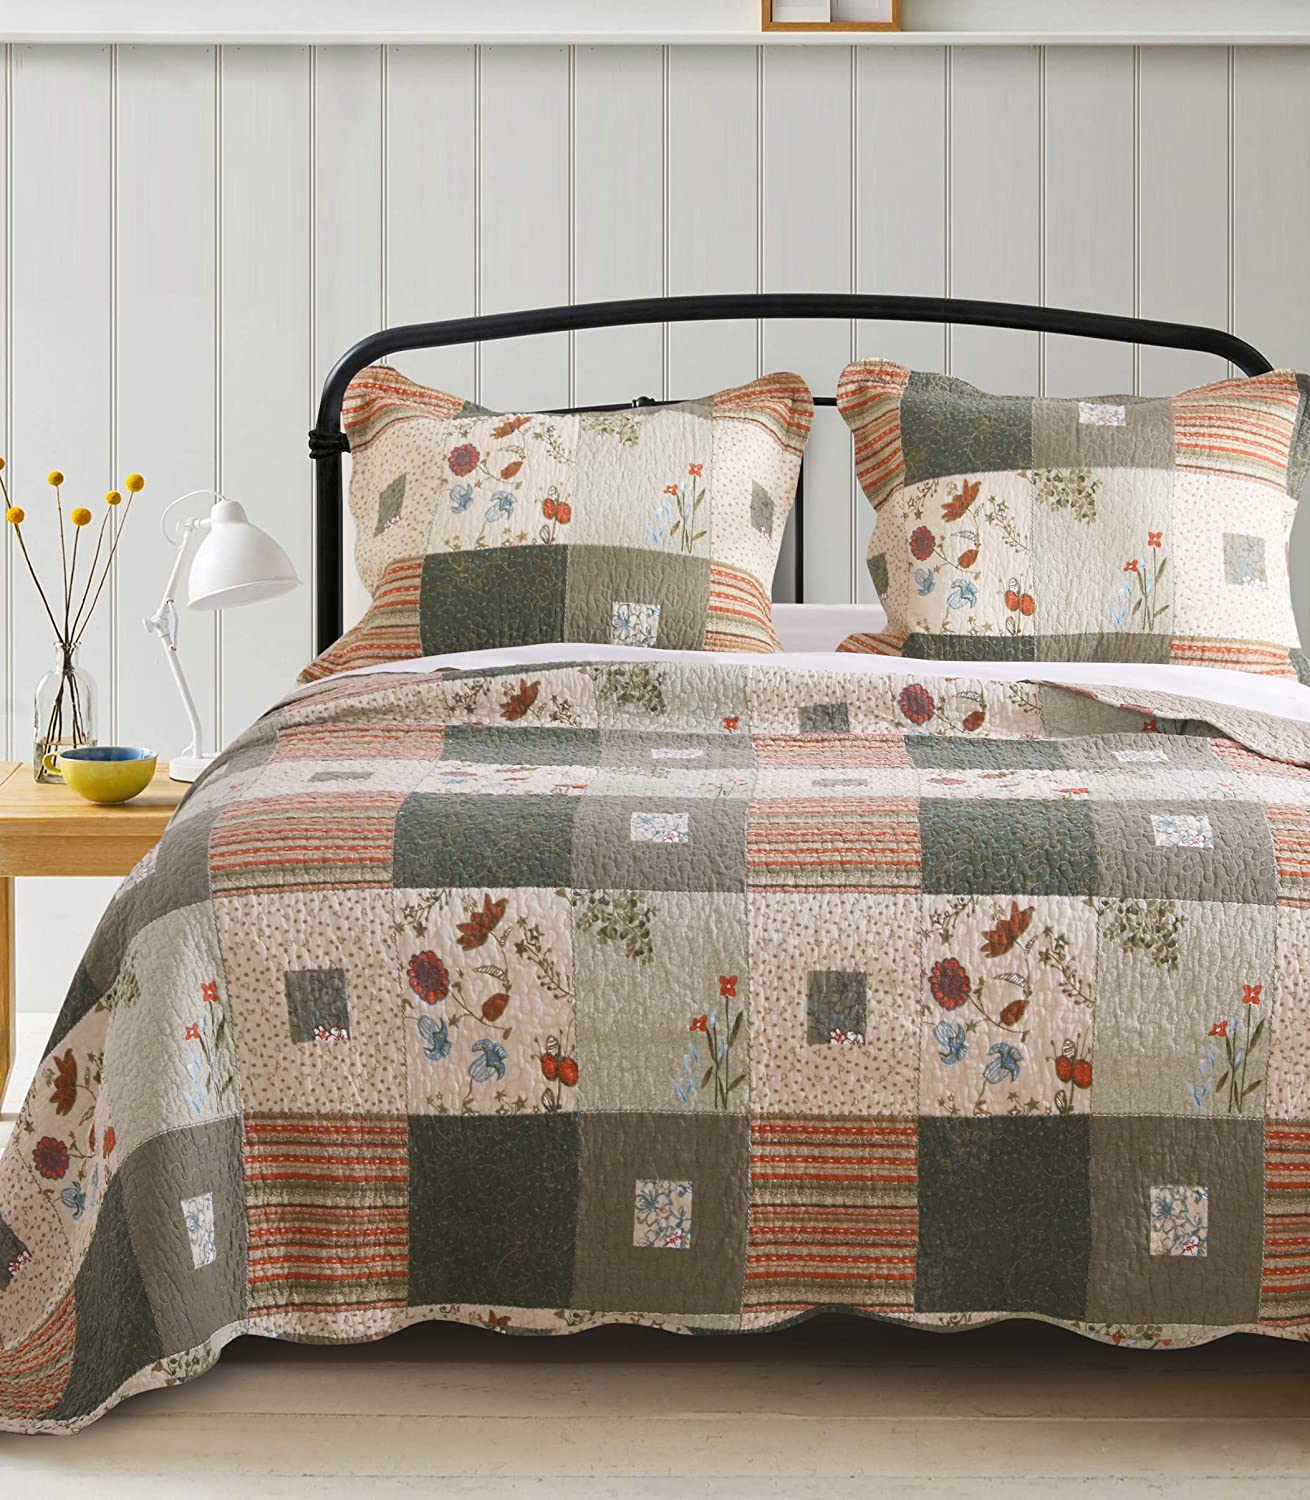 Greenland Home Sedona Quilt Set, 3-Piece Full/Queen, Gray